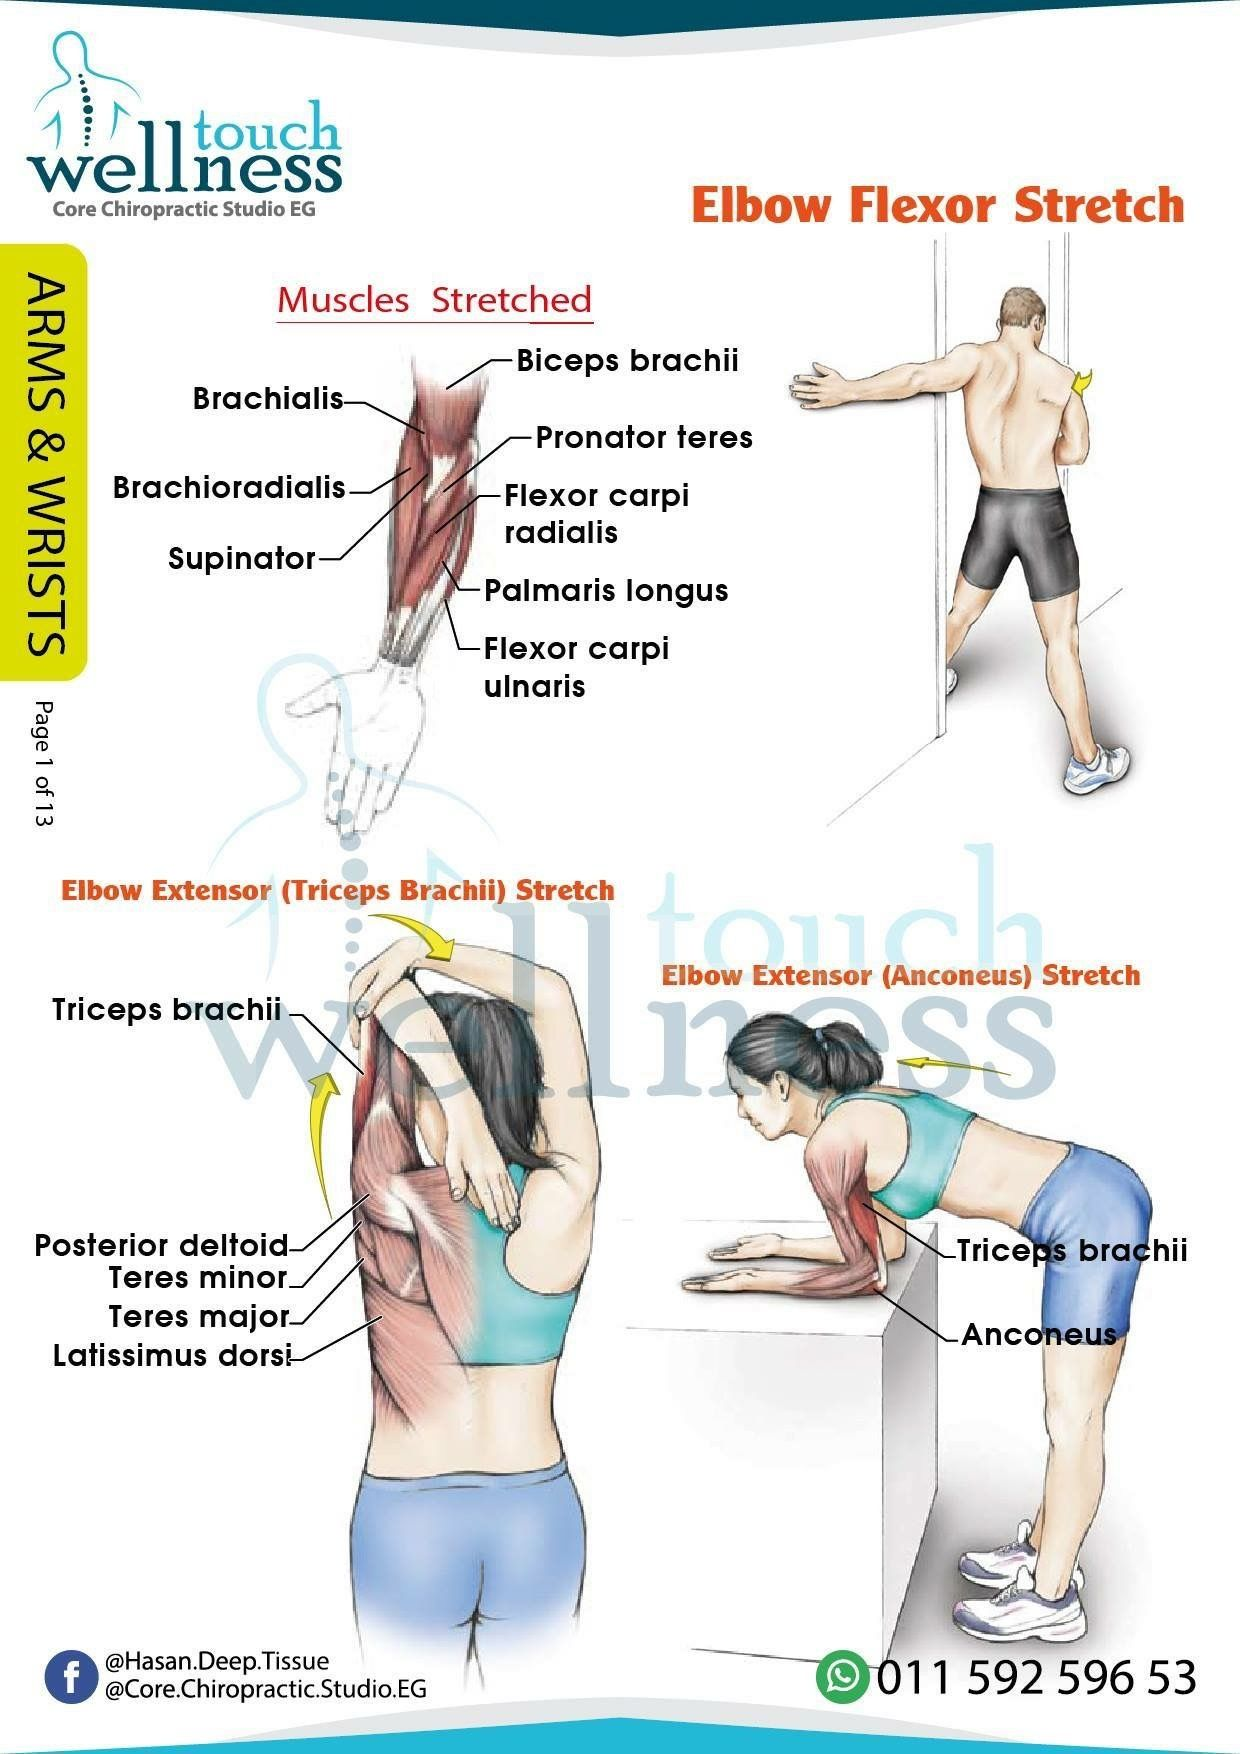 41+ Ways to stretch your triceps trends